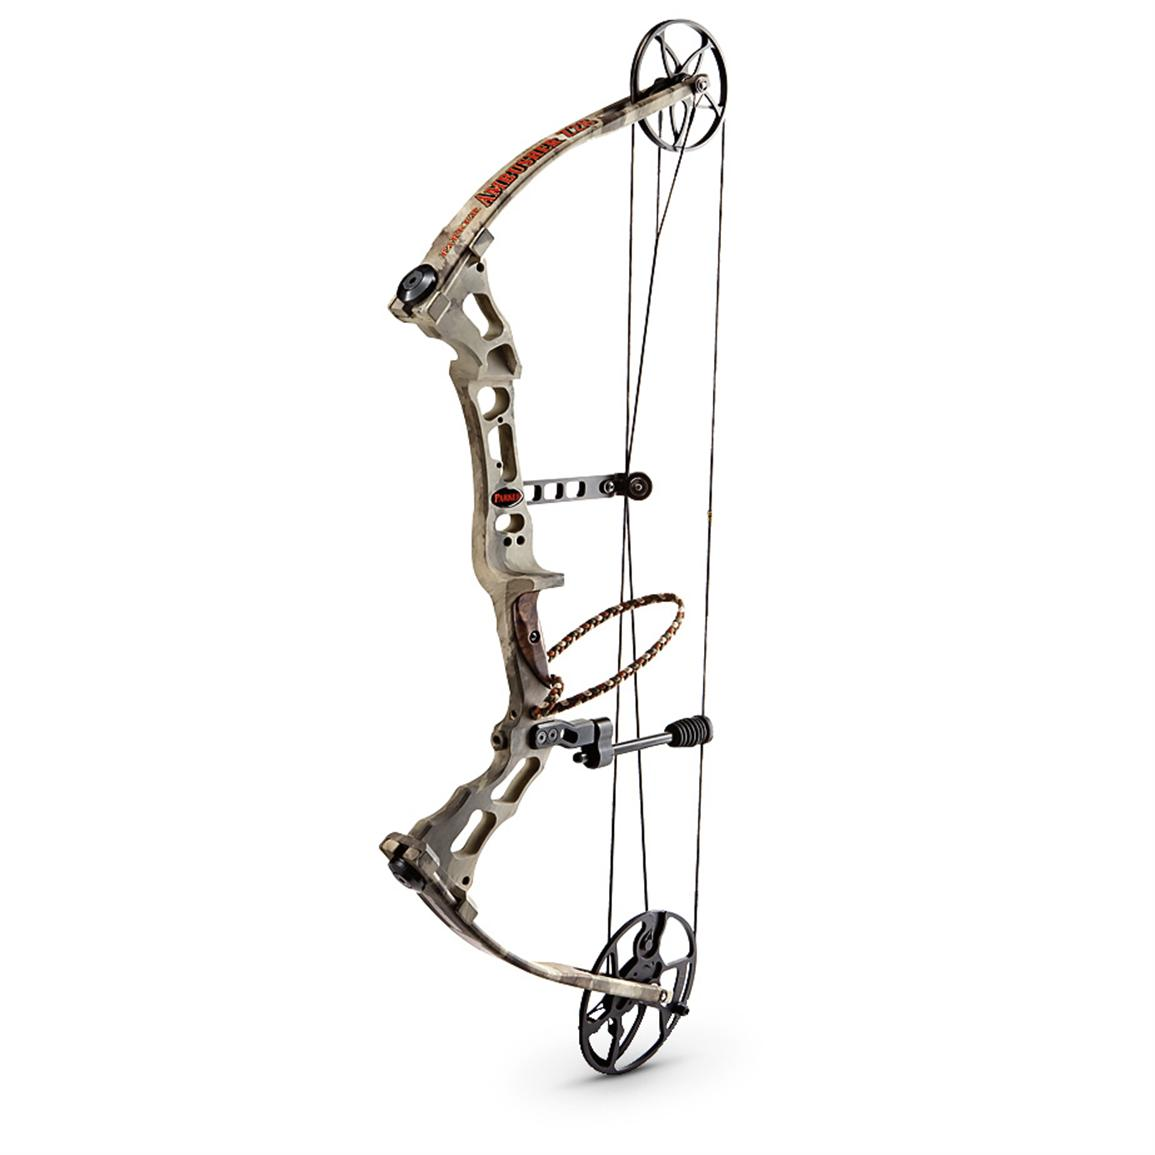 Parker® Ambusher Compound Bow; 27-34 inch draw length